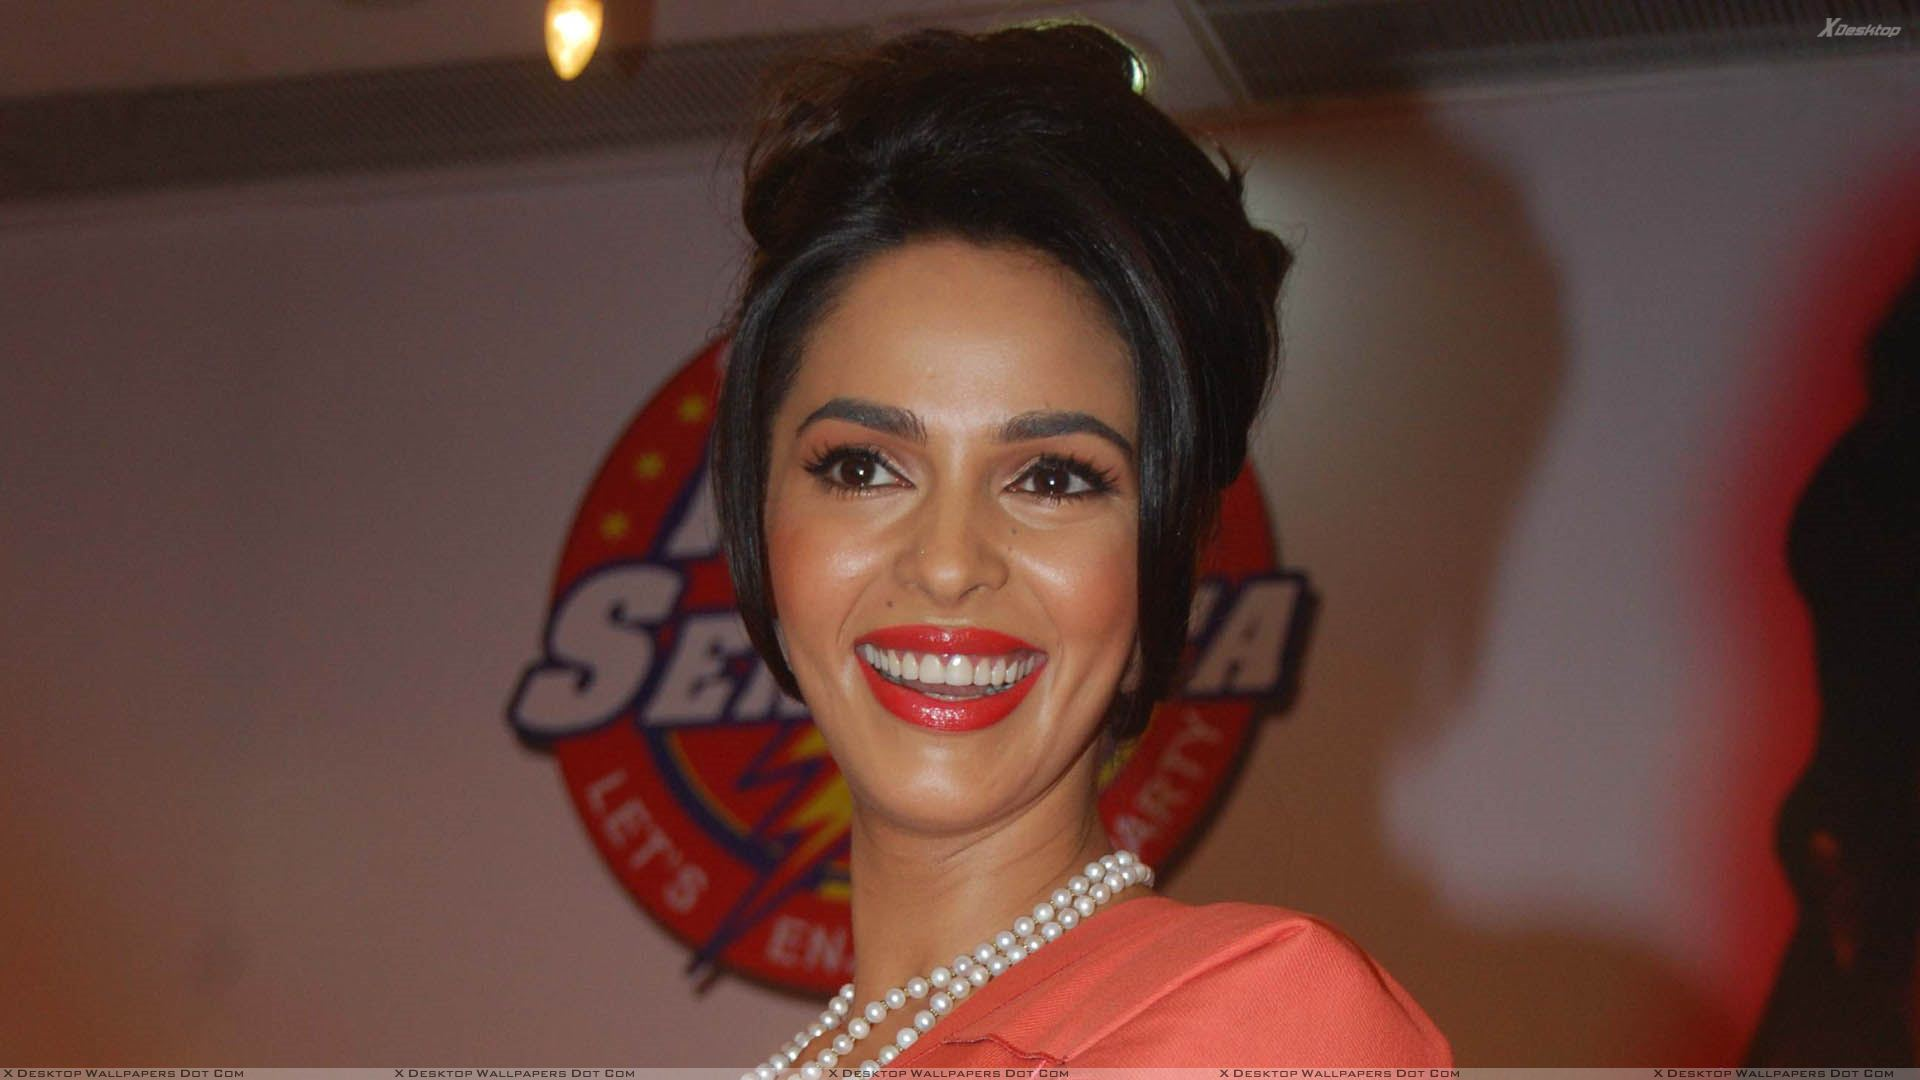 mallika sherawat wallpapers, photos & images in hd